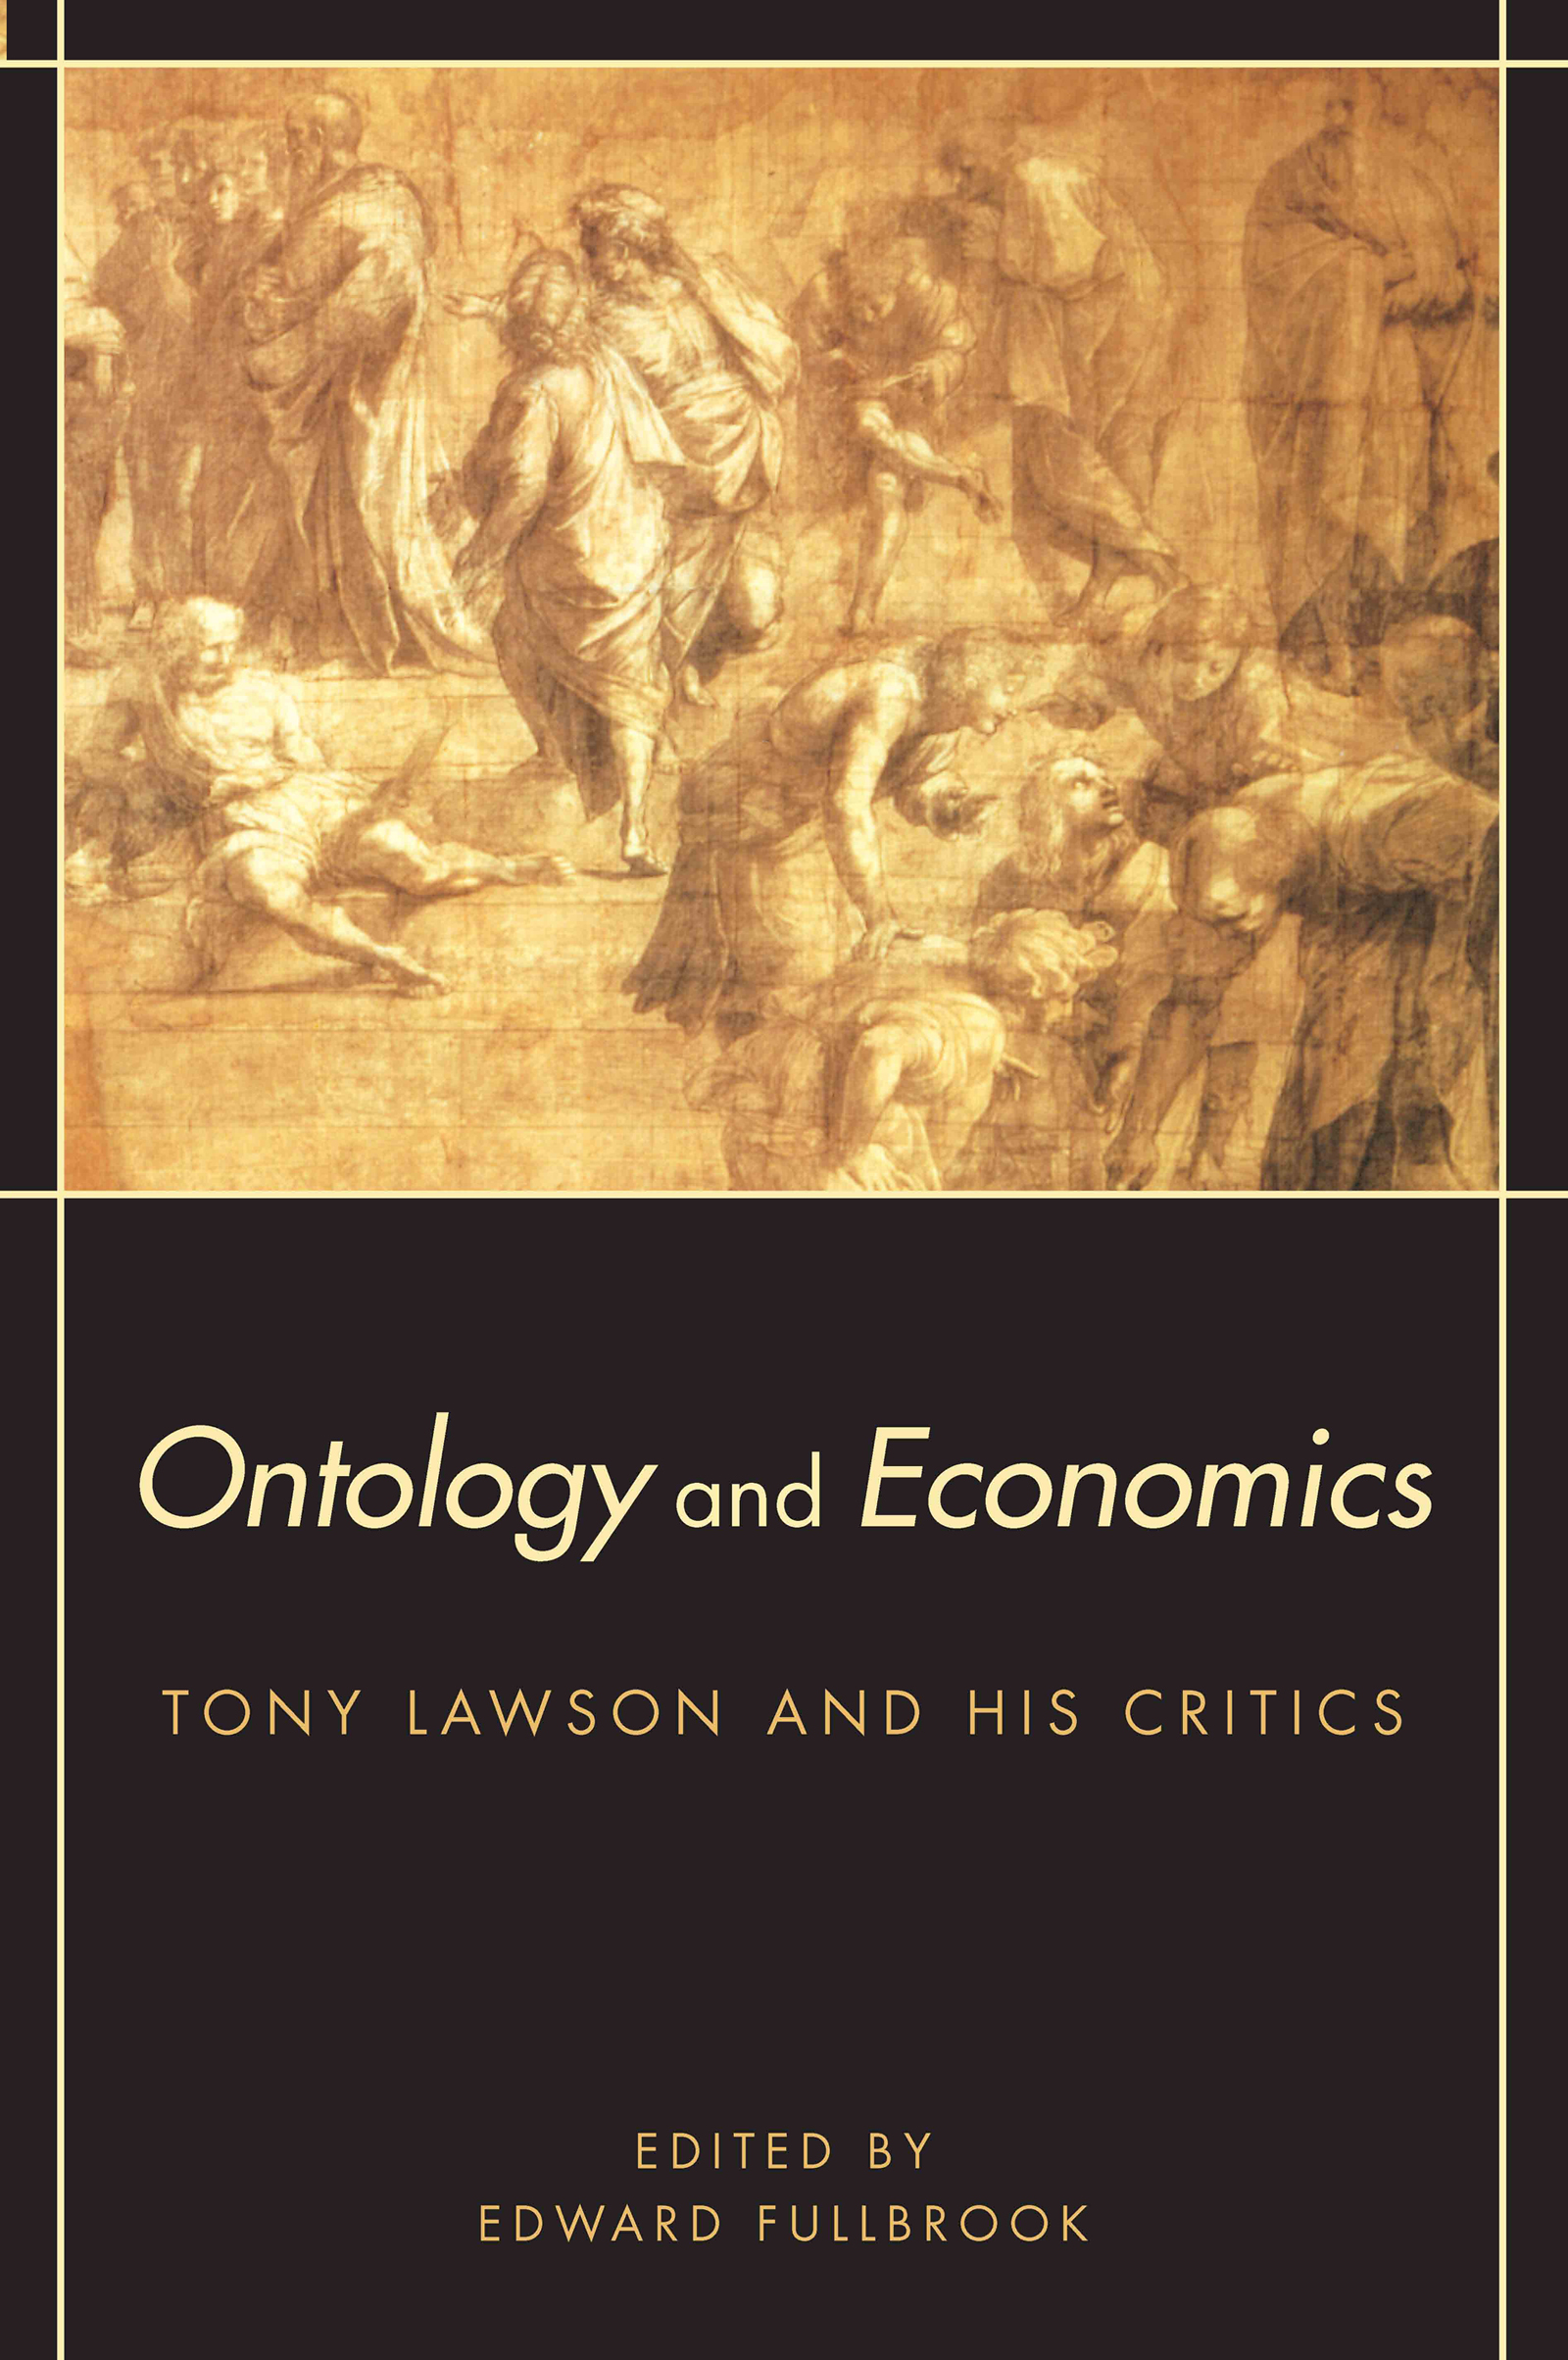 Ontology and Economics: Tony Lawson and His Critics book cover